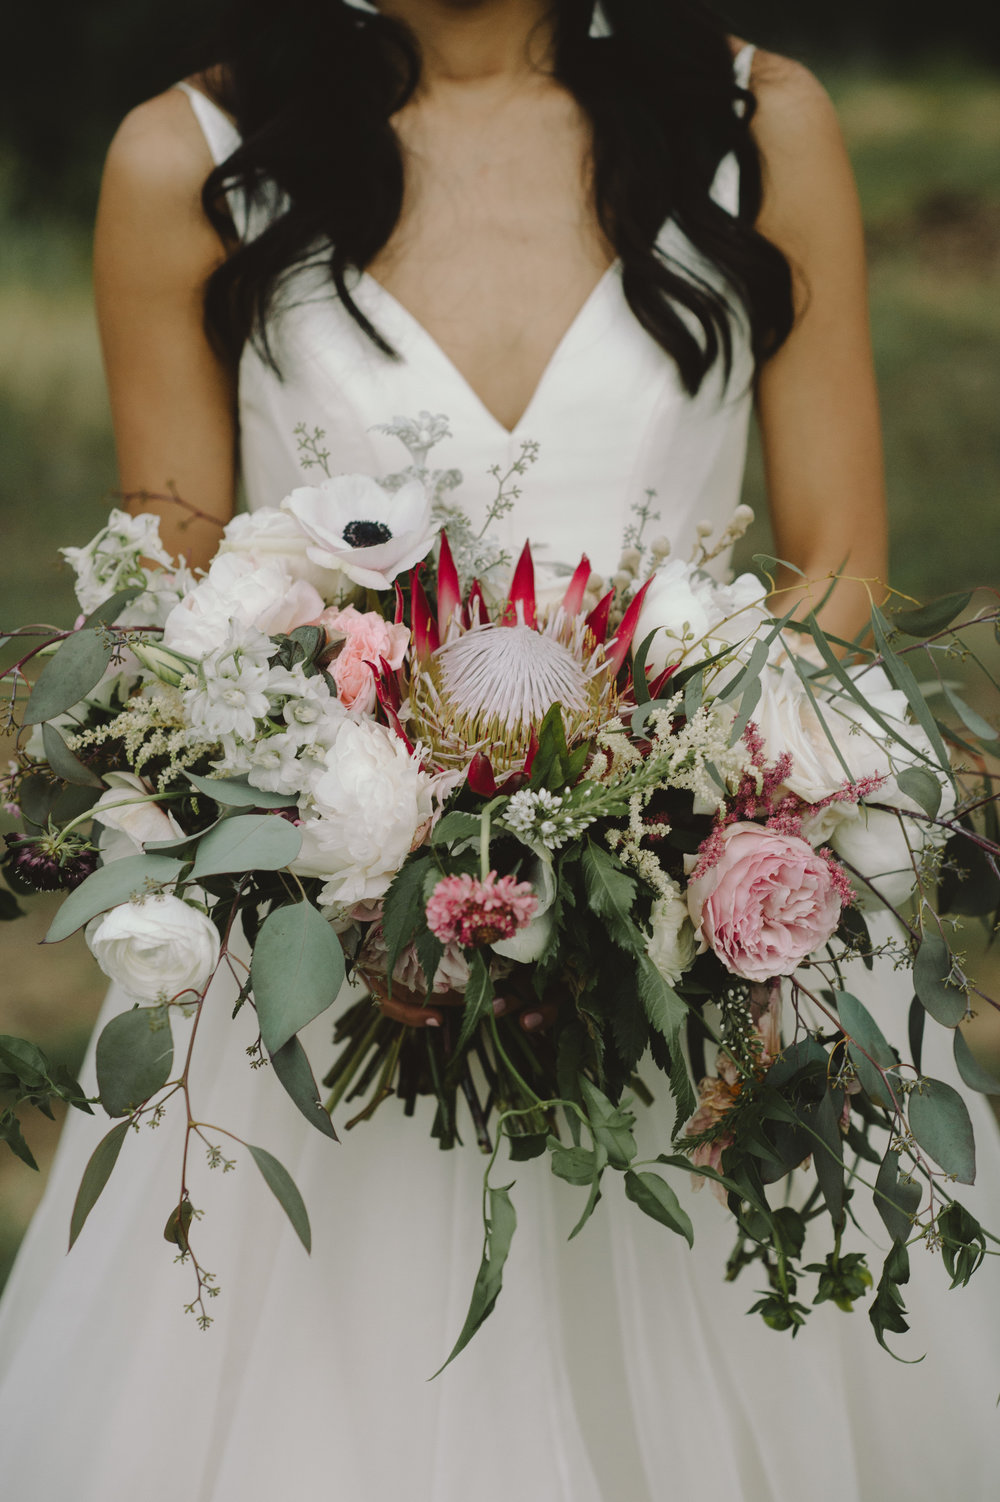 Bohemian style, wildflower inspired bridal and bridesmaid bouquets with Anemone, eucalyptus, protea, peonies at Vista West Ranch. Petal Pushers floral event design studio located in Dripping Springs, Texas.